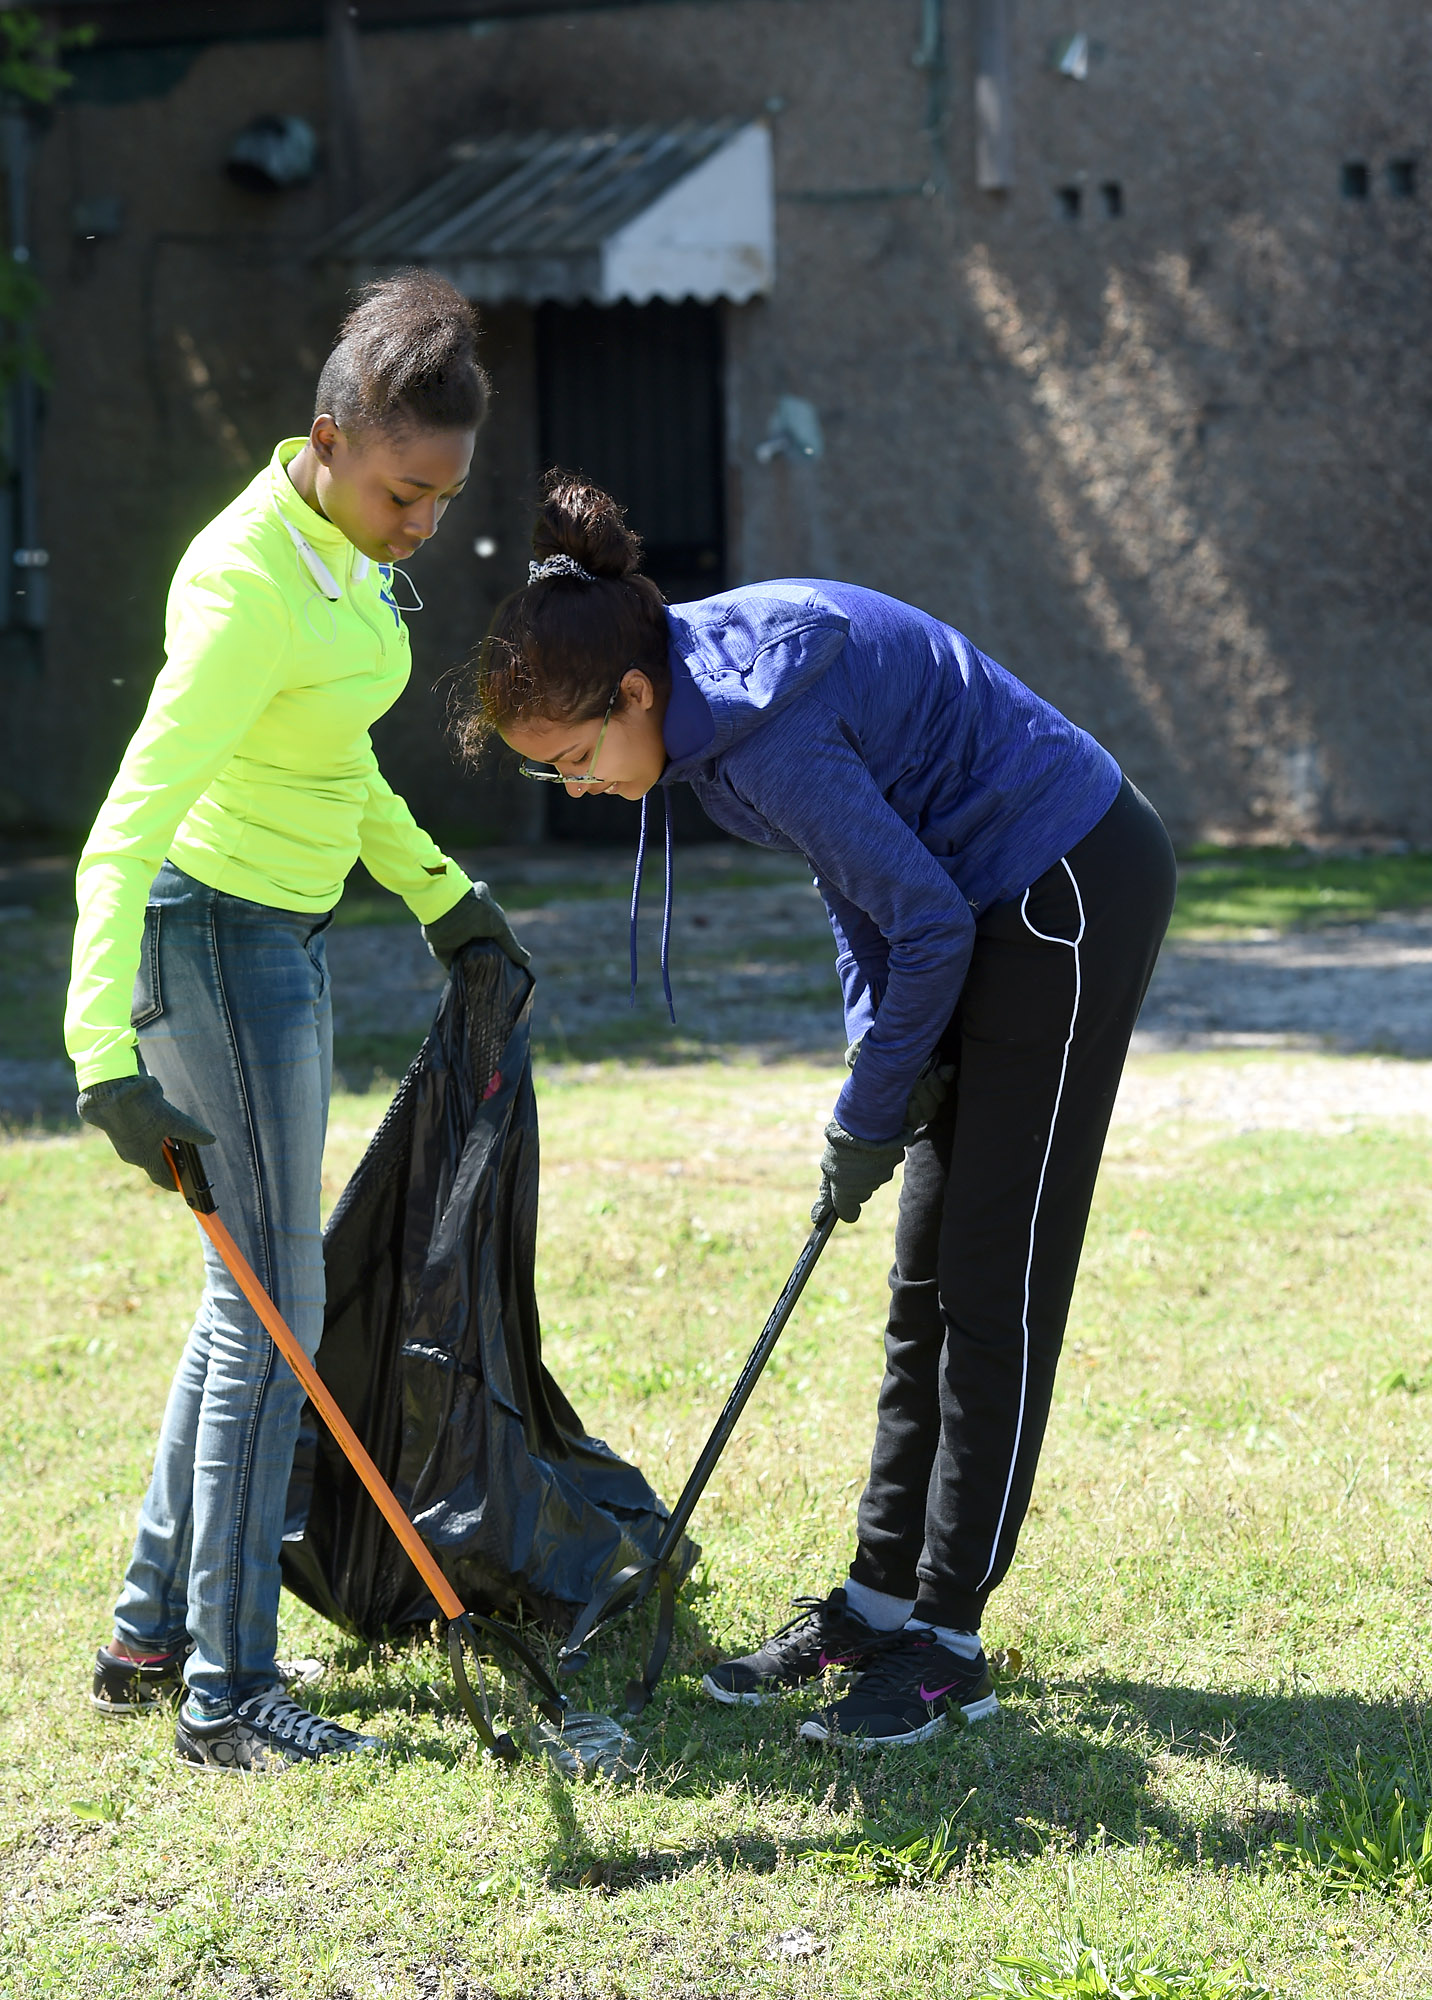 G.W. Carver High School students Clara Alameiva (right) and Latavia Walker pick up trash in the downtown Ensley area of Birmingham, Ala., Saturday, May 6, 2017. (Photo by Mark Almond)